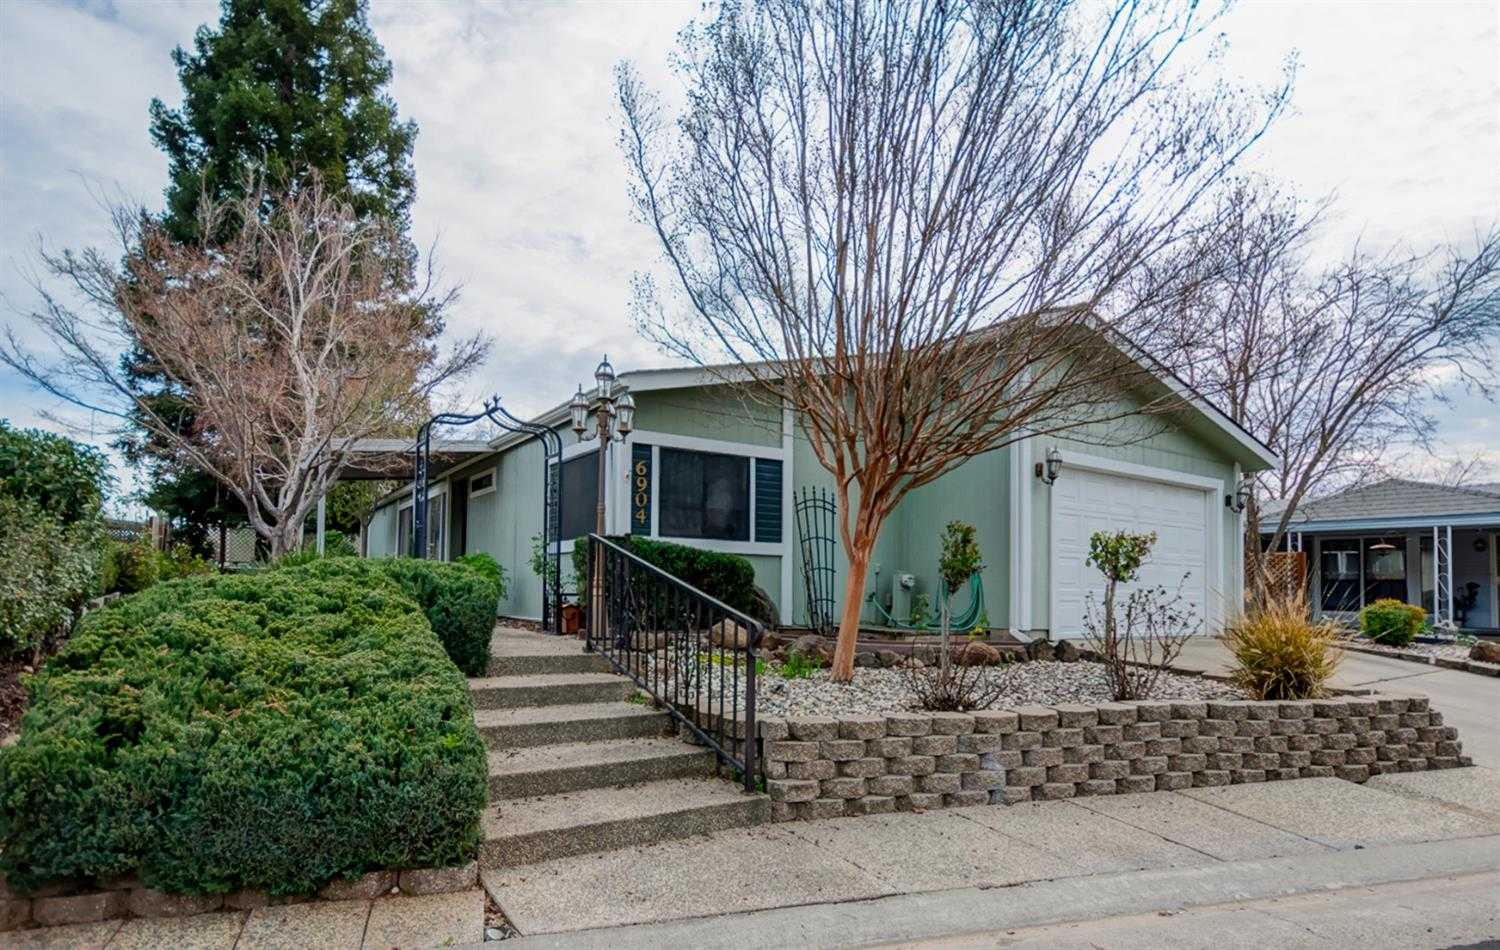 $137,000 - 2Br/2Ba -  for Sale in Citrus Heights